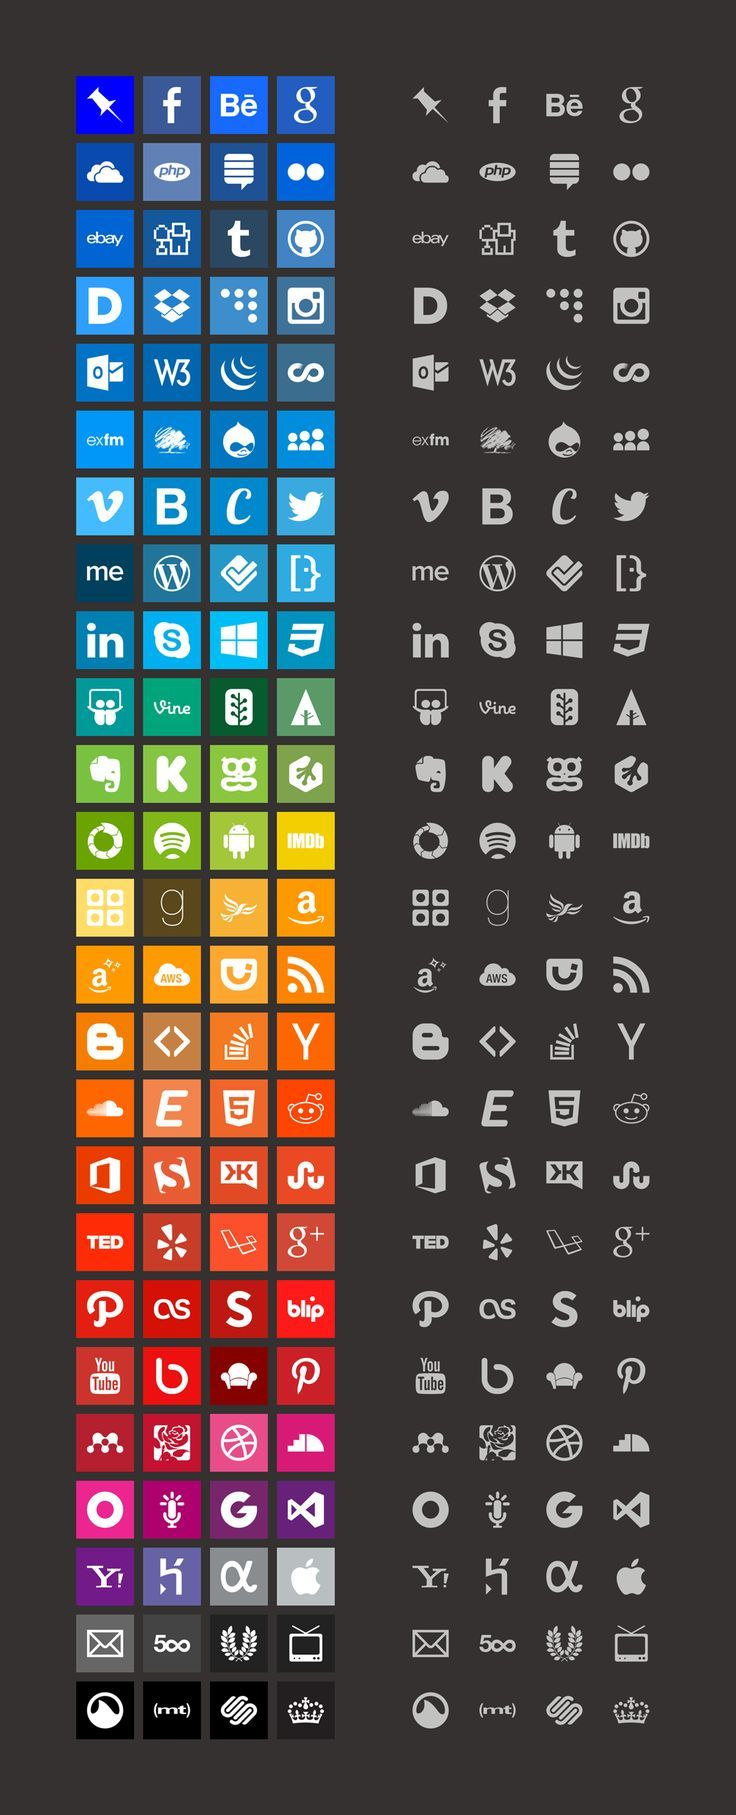 Download the complete set https://github.com/danleech/simple-icons/archive/master.zip Download individual files from the GitHub repository https://github.com/danleech/simple-icons Preview the icons and get colour info at simpleicons.org